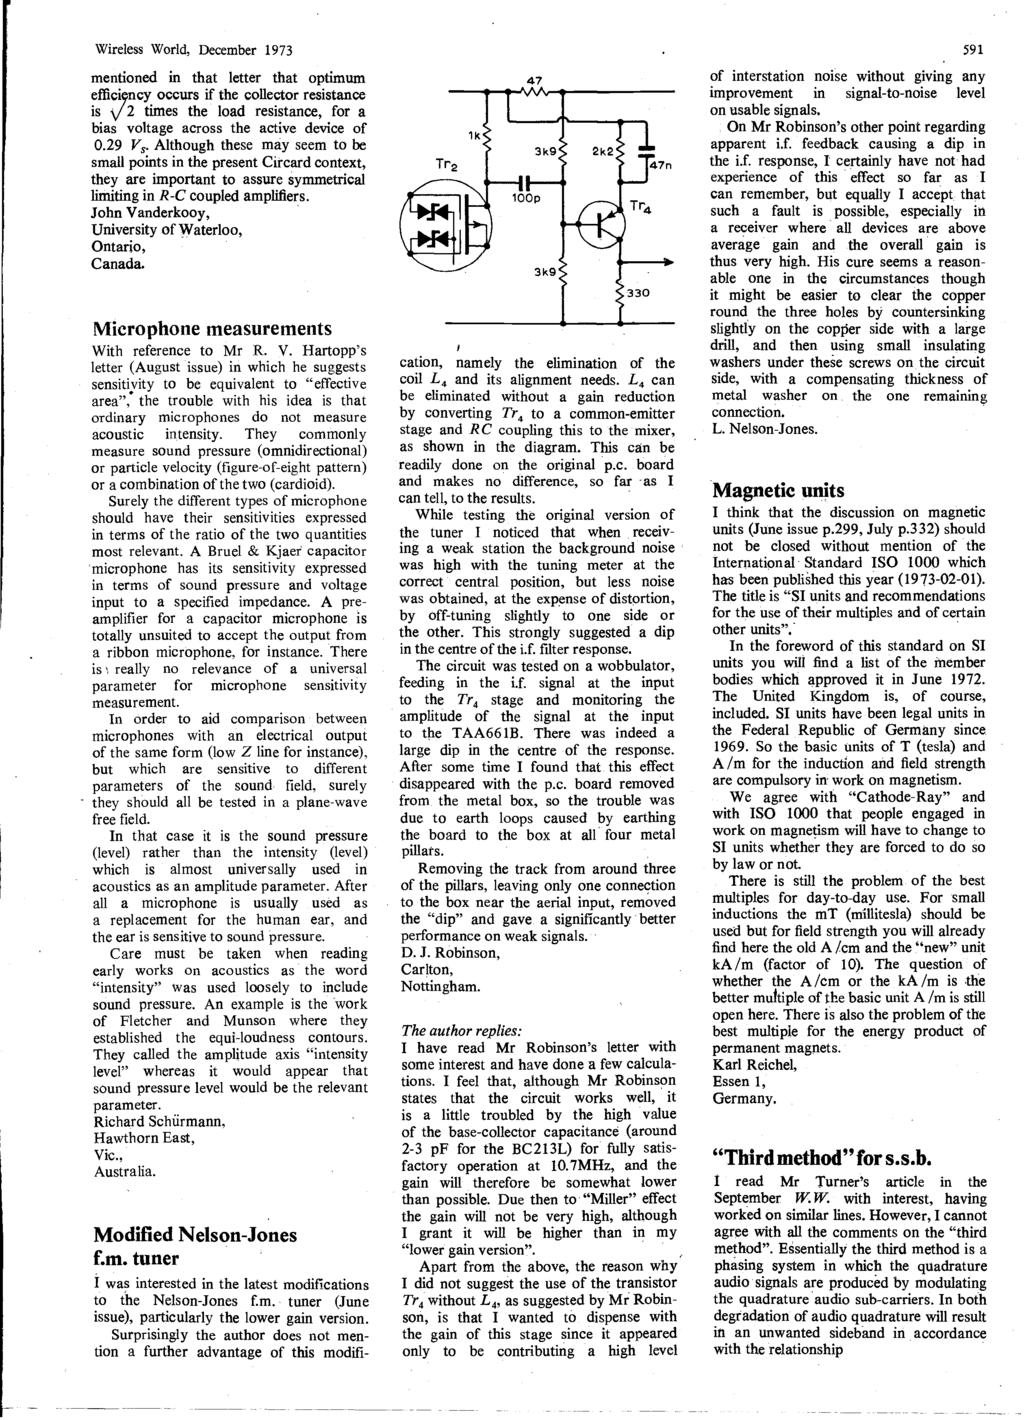 Word Ic Crossover Networks Using Opto Couplers December P Pdf Modify Old Battery Charger Into Automatic Power Scr And Ca723 Wireless World 1973 Mentioned In That Letter Optimum Efficiency Occurs If The Collector